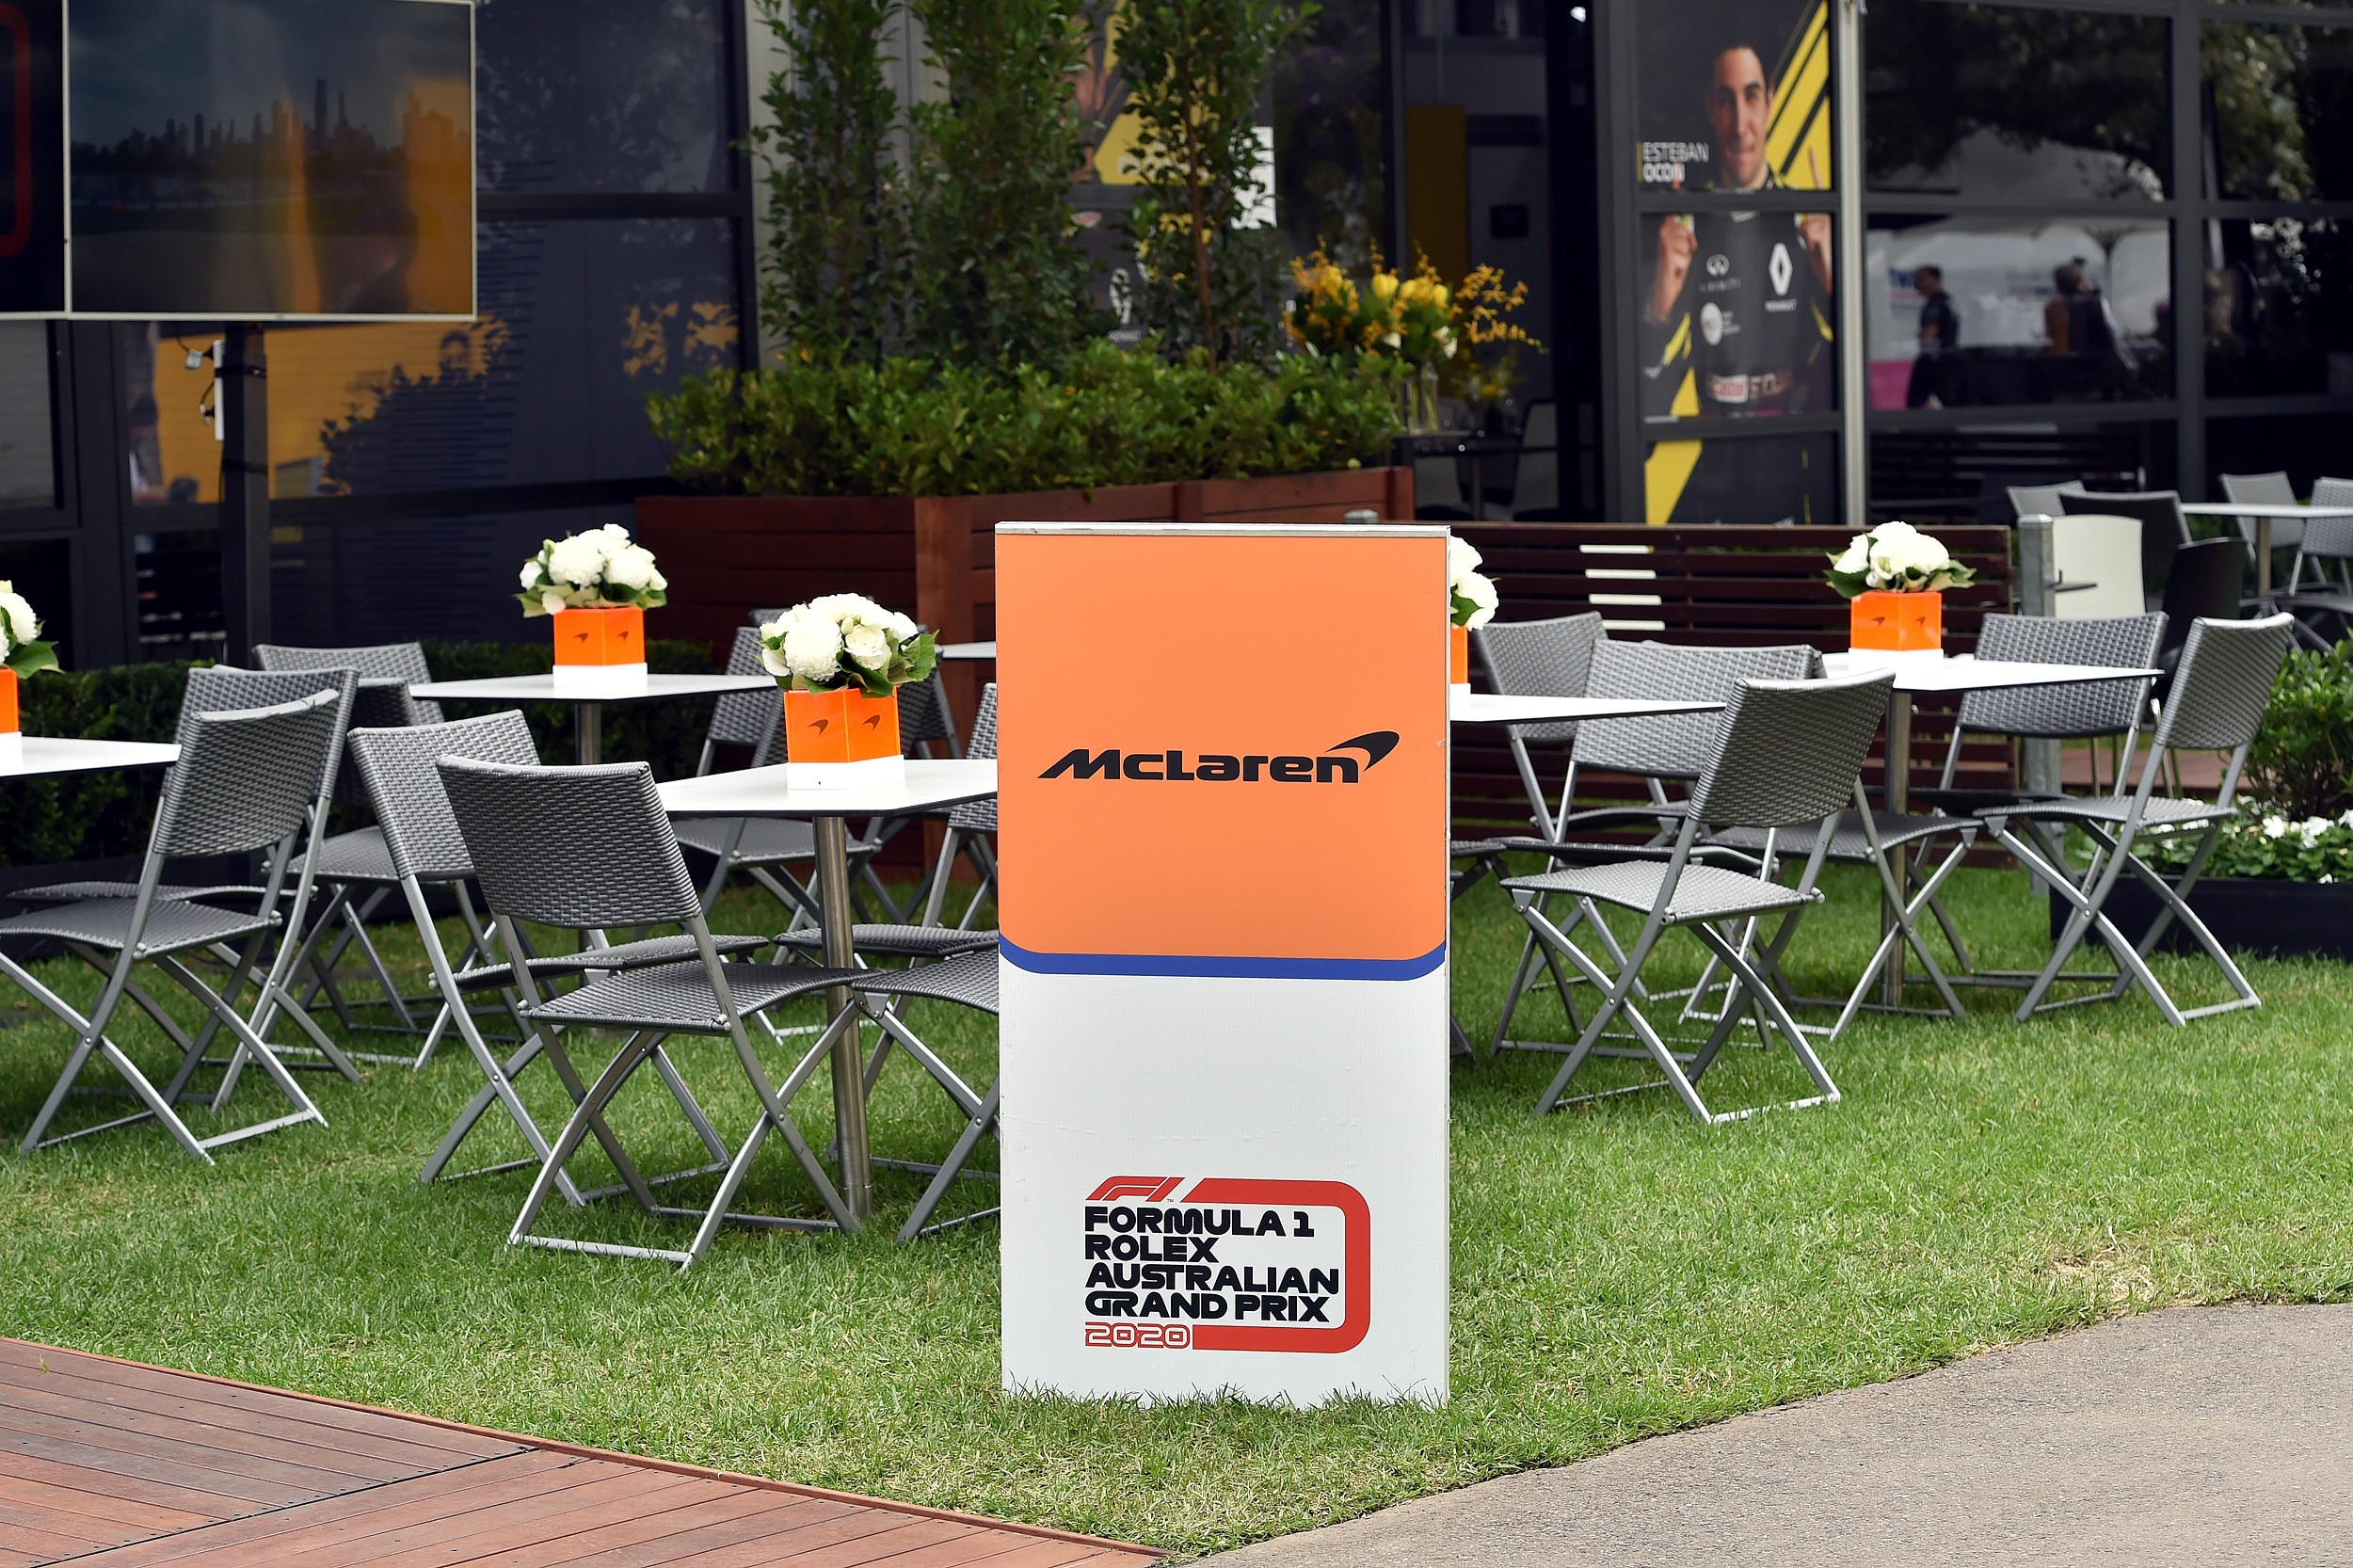 A total of 16 McLaren staff were placed in quarantine for two weeks at the request of the Australian medical authorities.